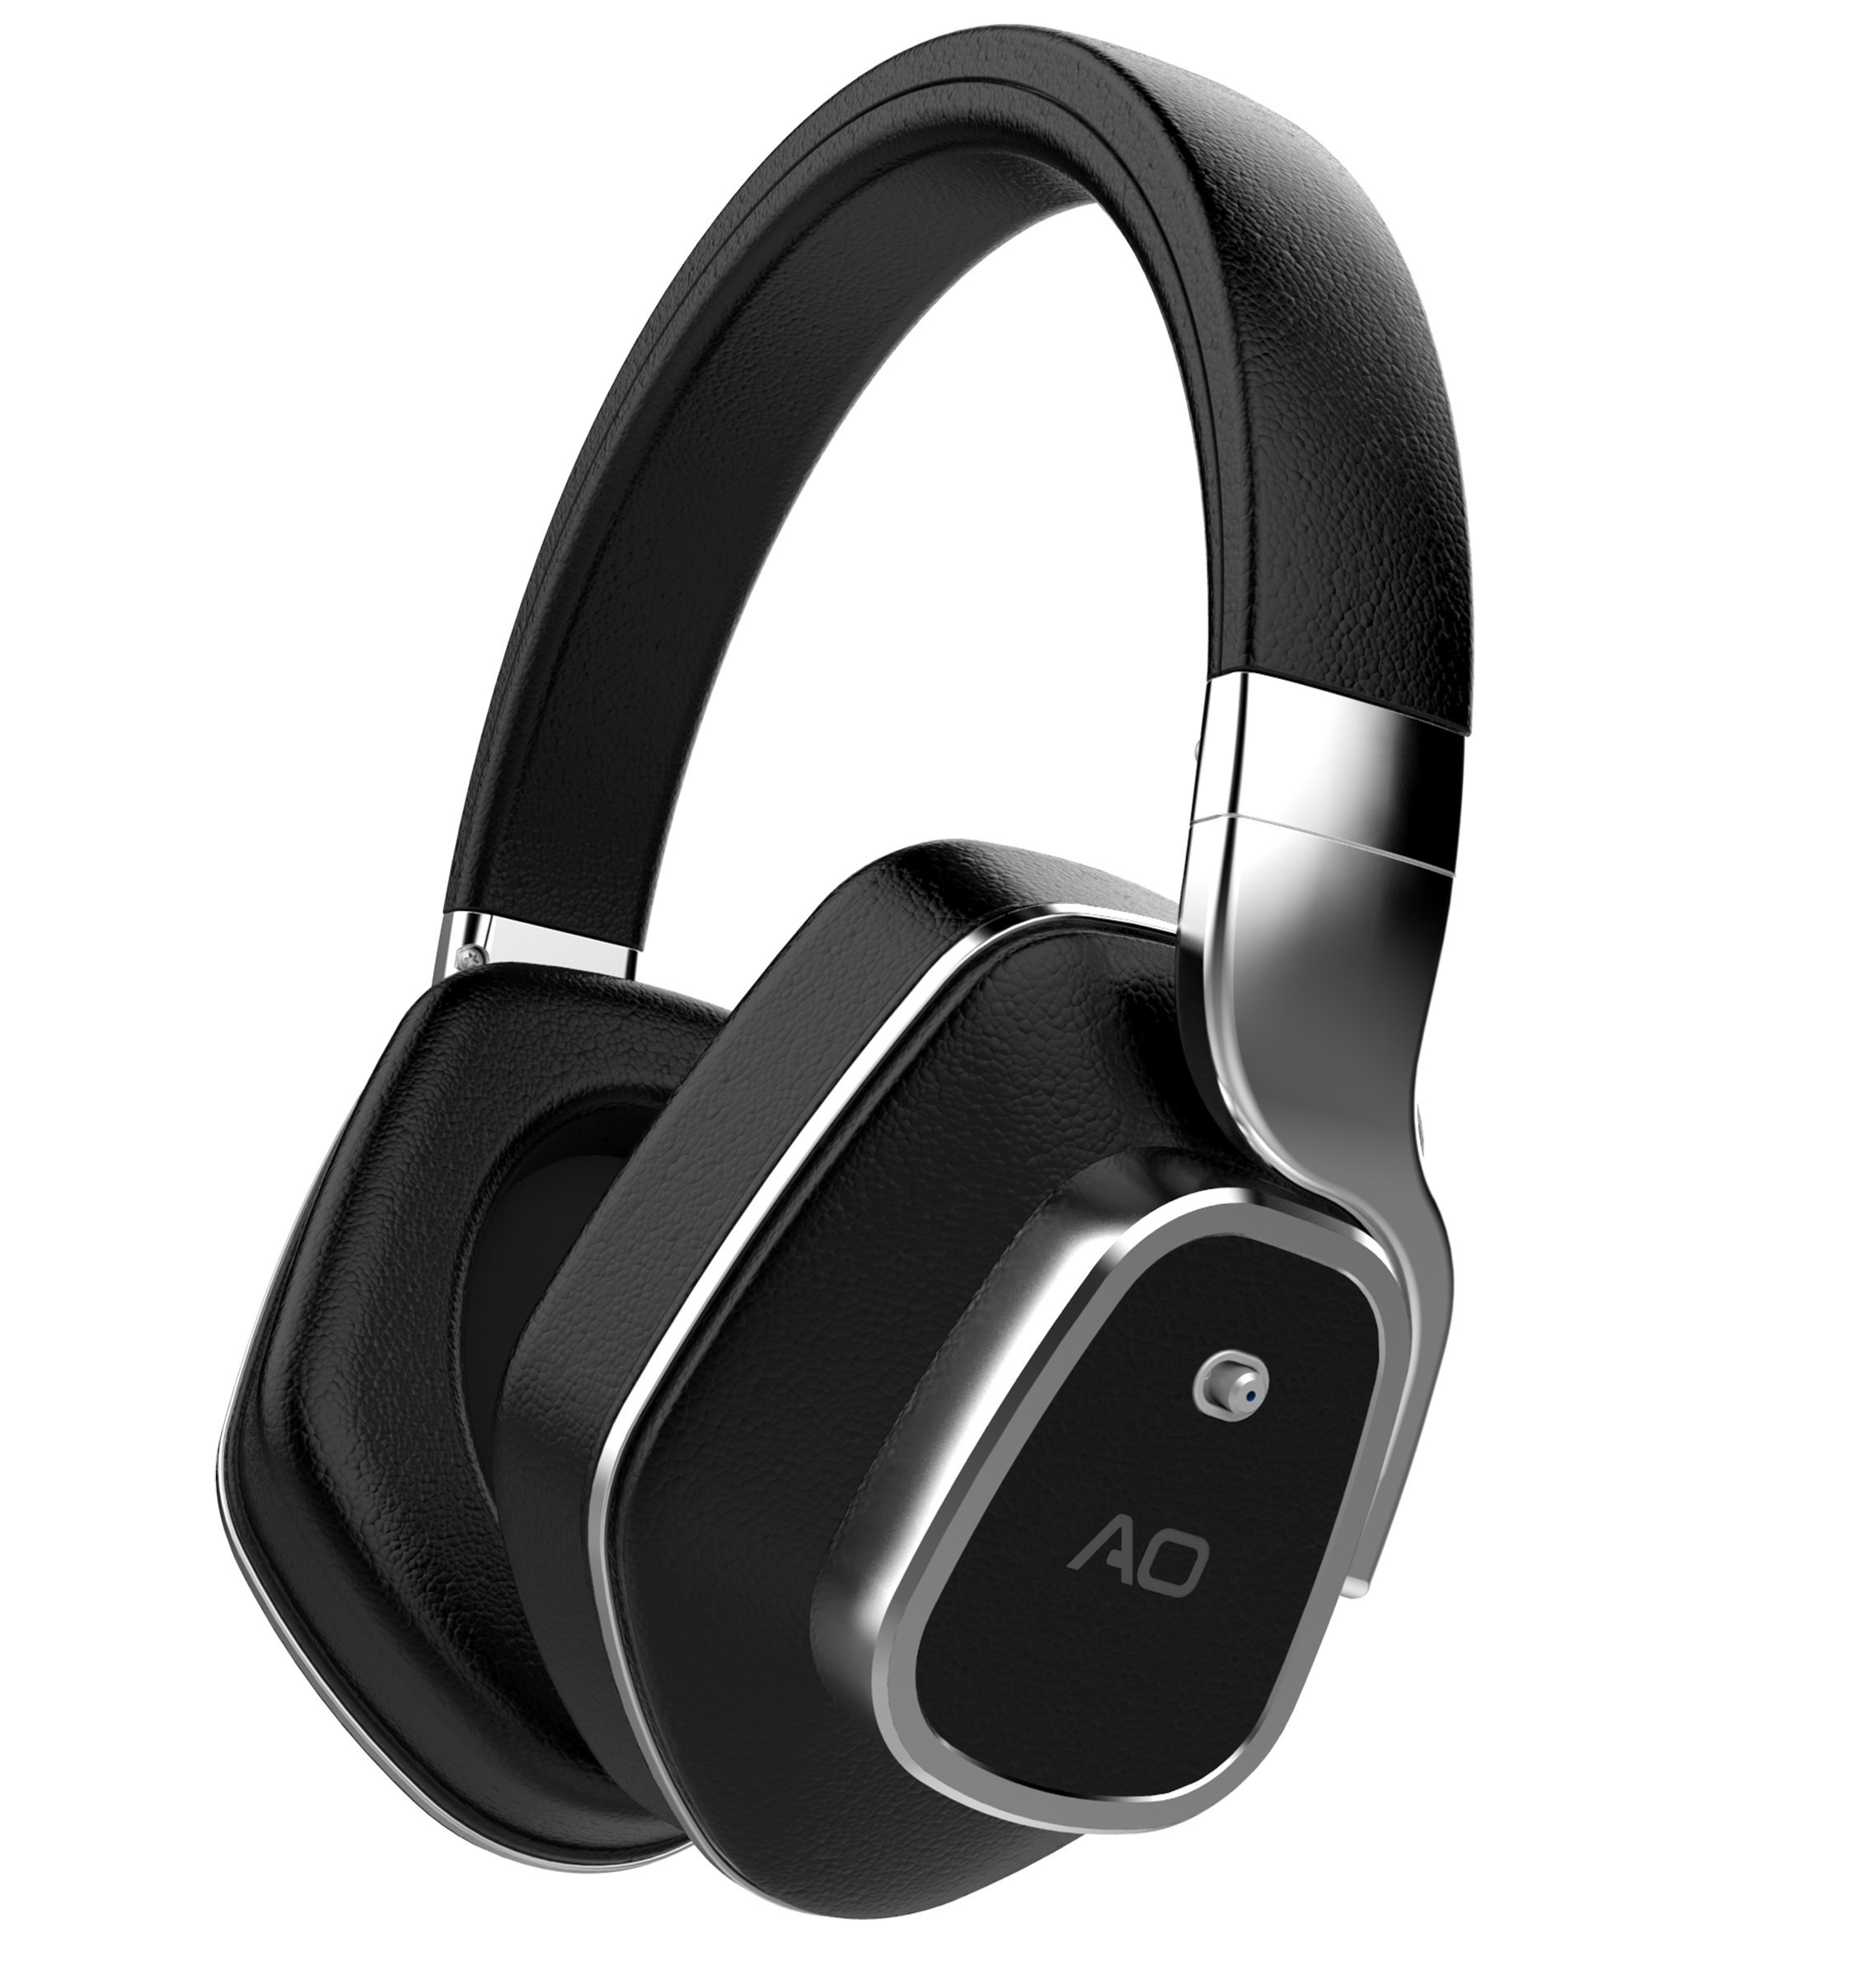 AO Active Noise Cancelling Wireless Bluetooth Headphones - M7 by AO